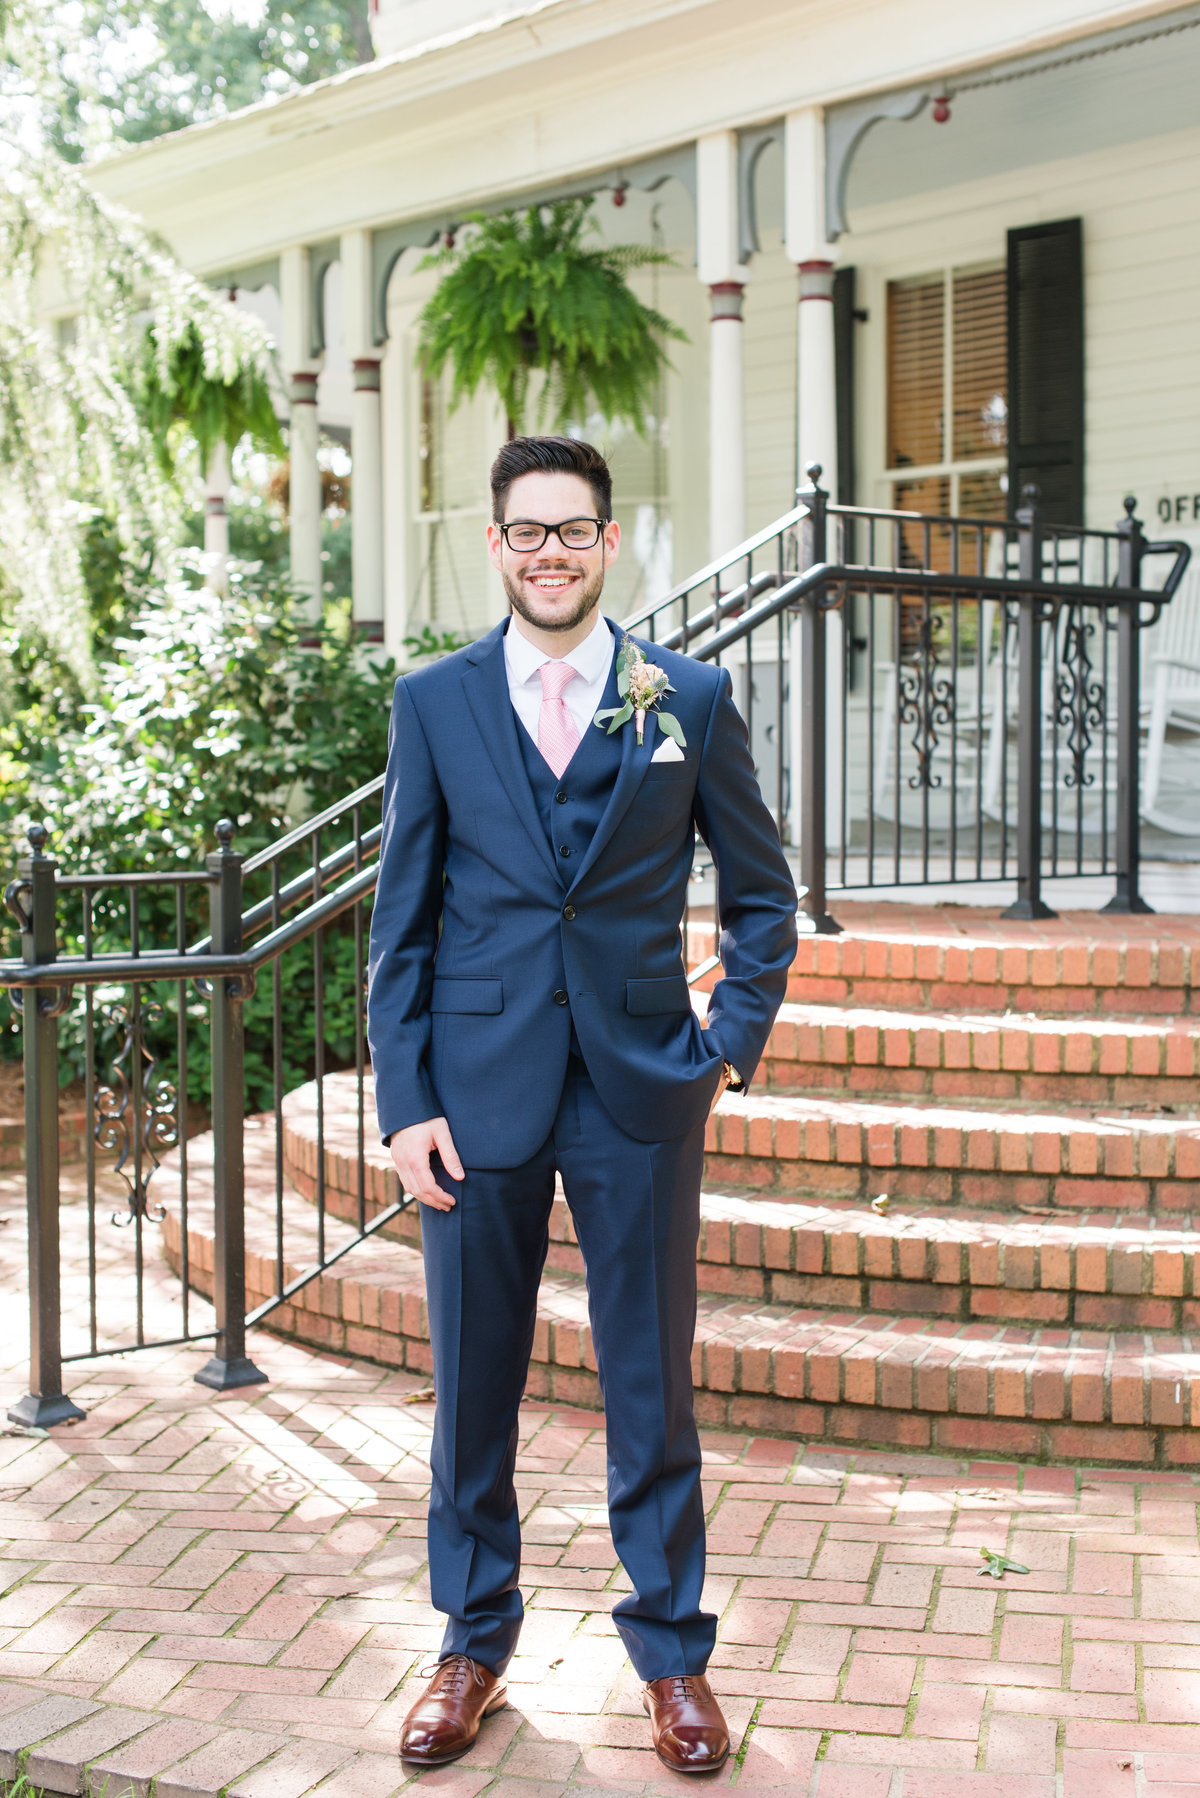 Groom wearing navy blue suit with pink tie with one hang in pocket looking at the camera standing in front of the main house at Gardens at Gray Gables